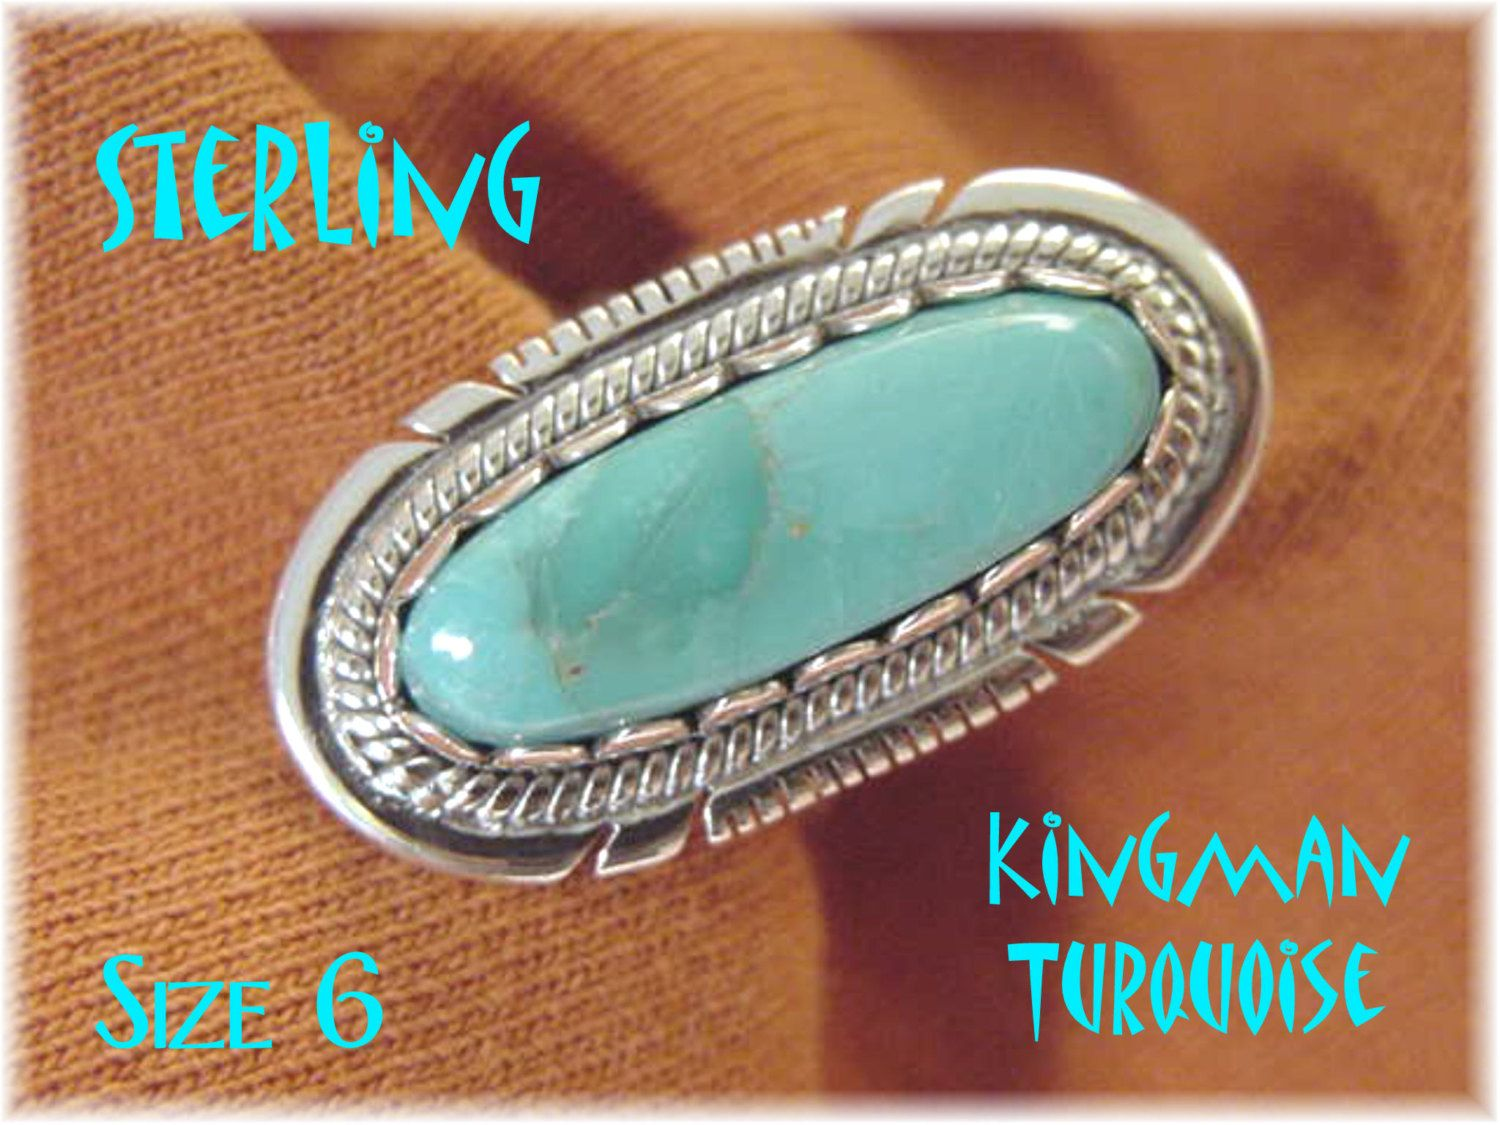 Kingman Turquoise - Sterling Silver Native American Indian Ring - Size 6 - Arizona Estate - New Old Stock NOS - Mothers Day - FREE SHIPPING